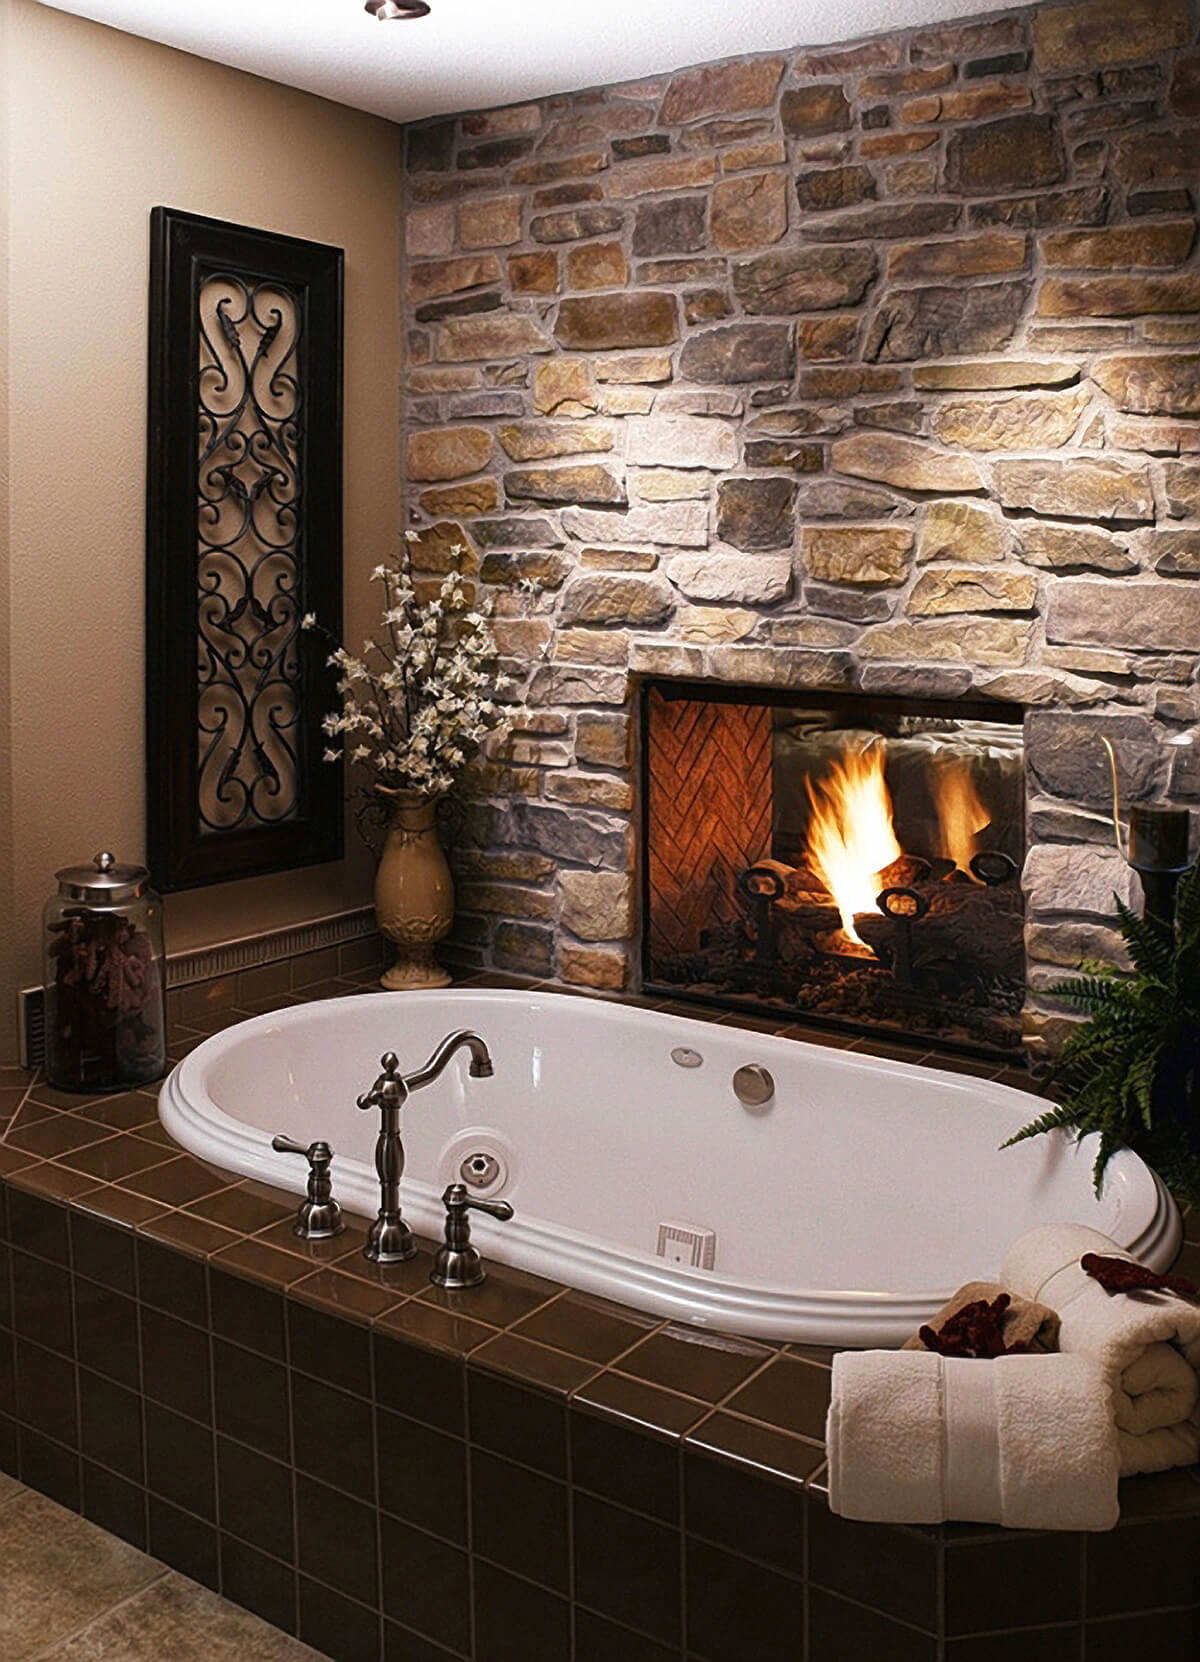 High Quality 23. A Bath By The Fire